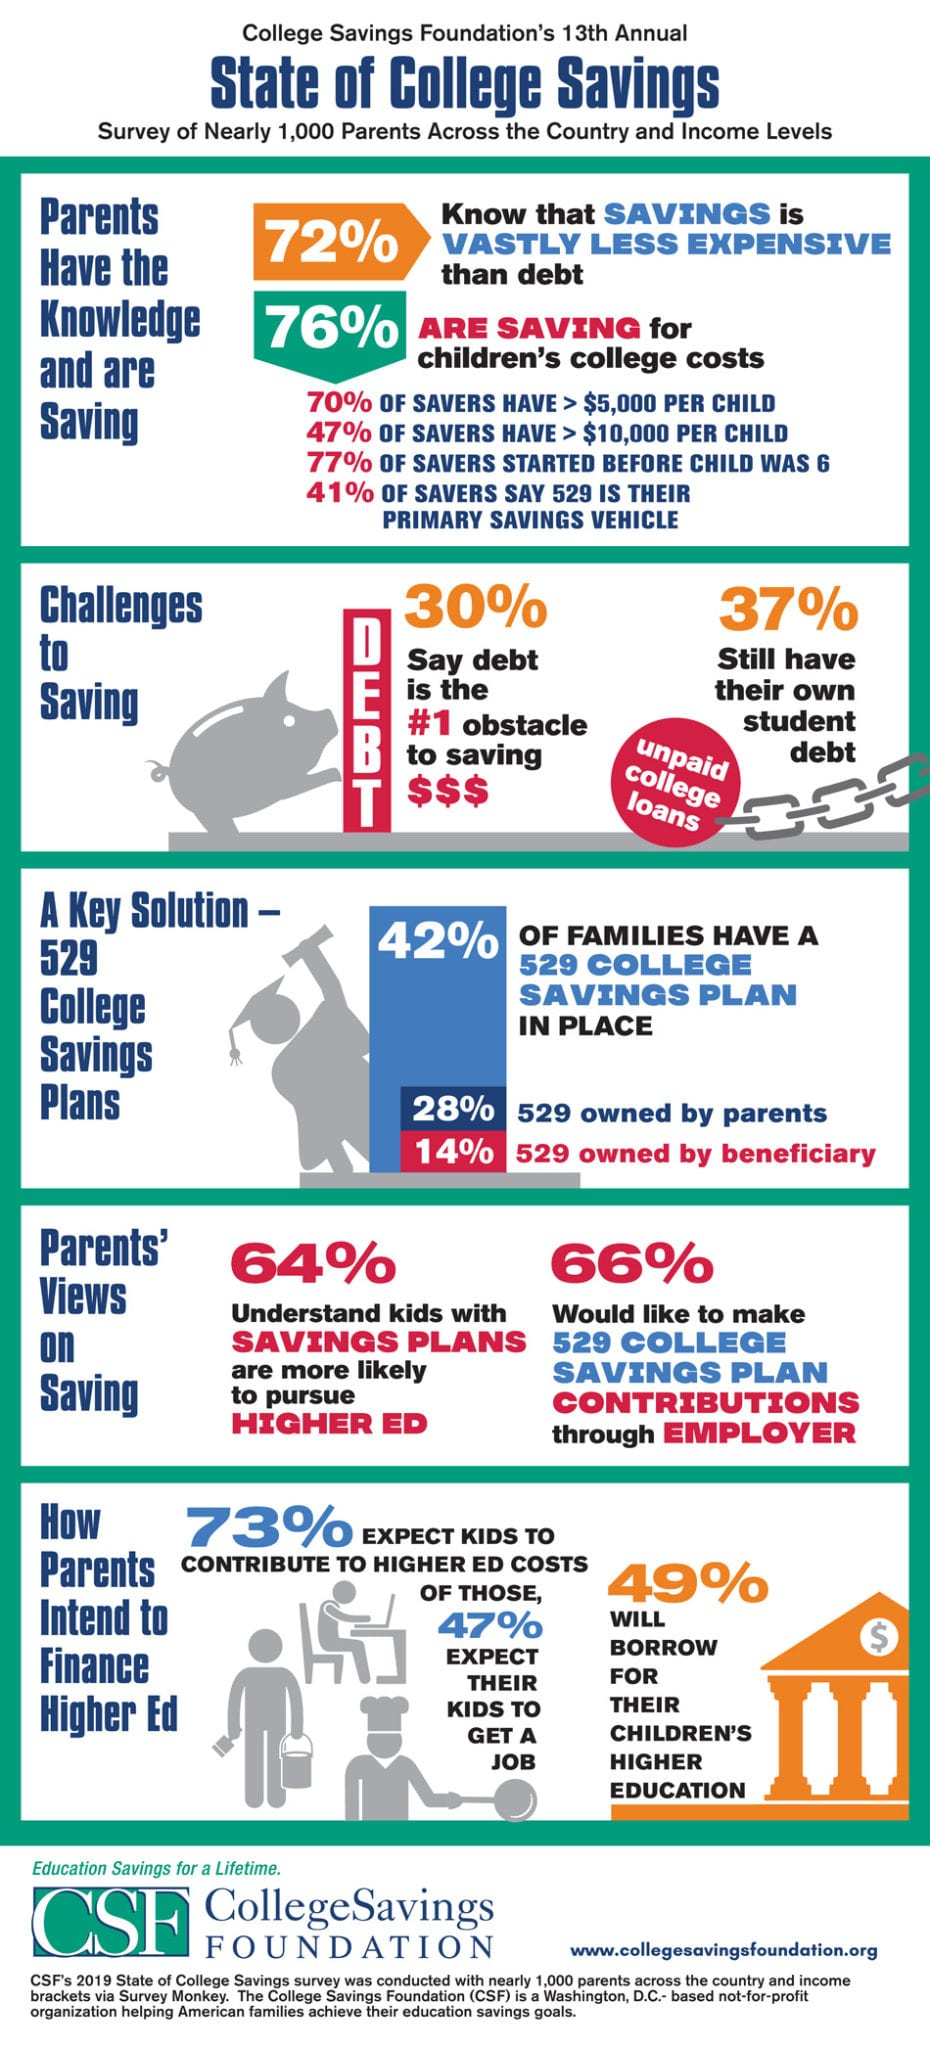 U.S. Parents Prize Saving over Borrowing for Higher Ed, says College Savings Foundation's 13th Annual Survey